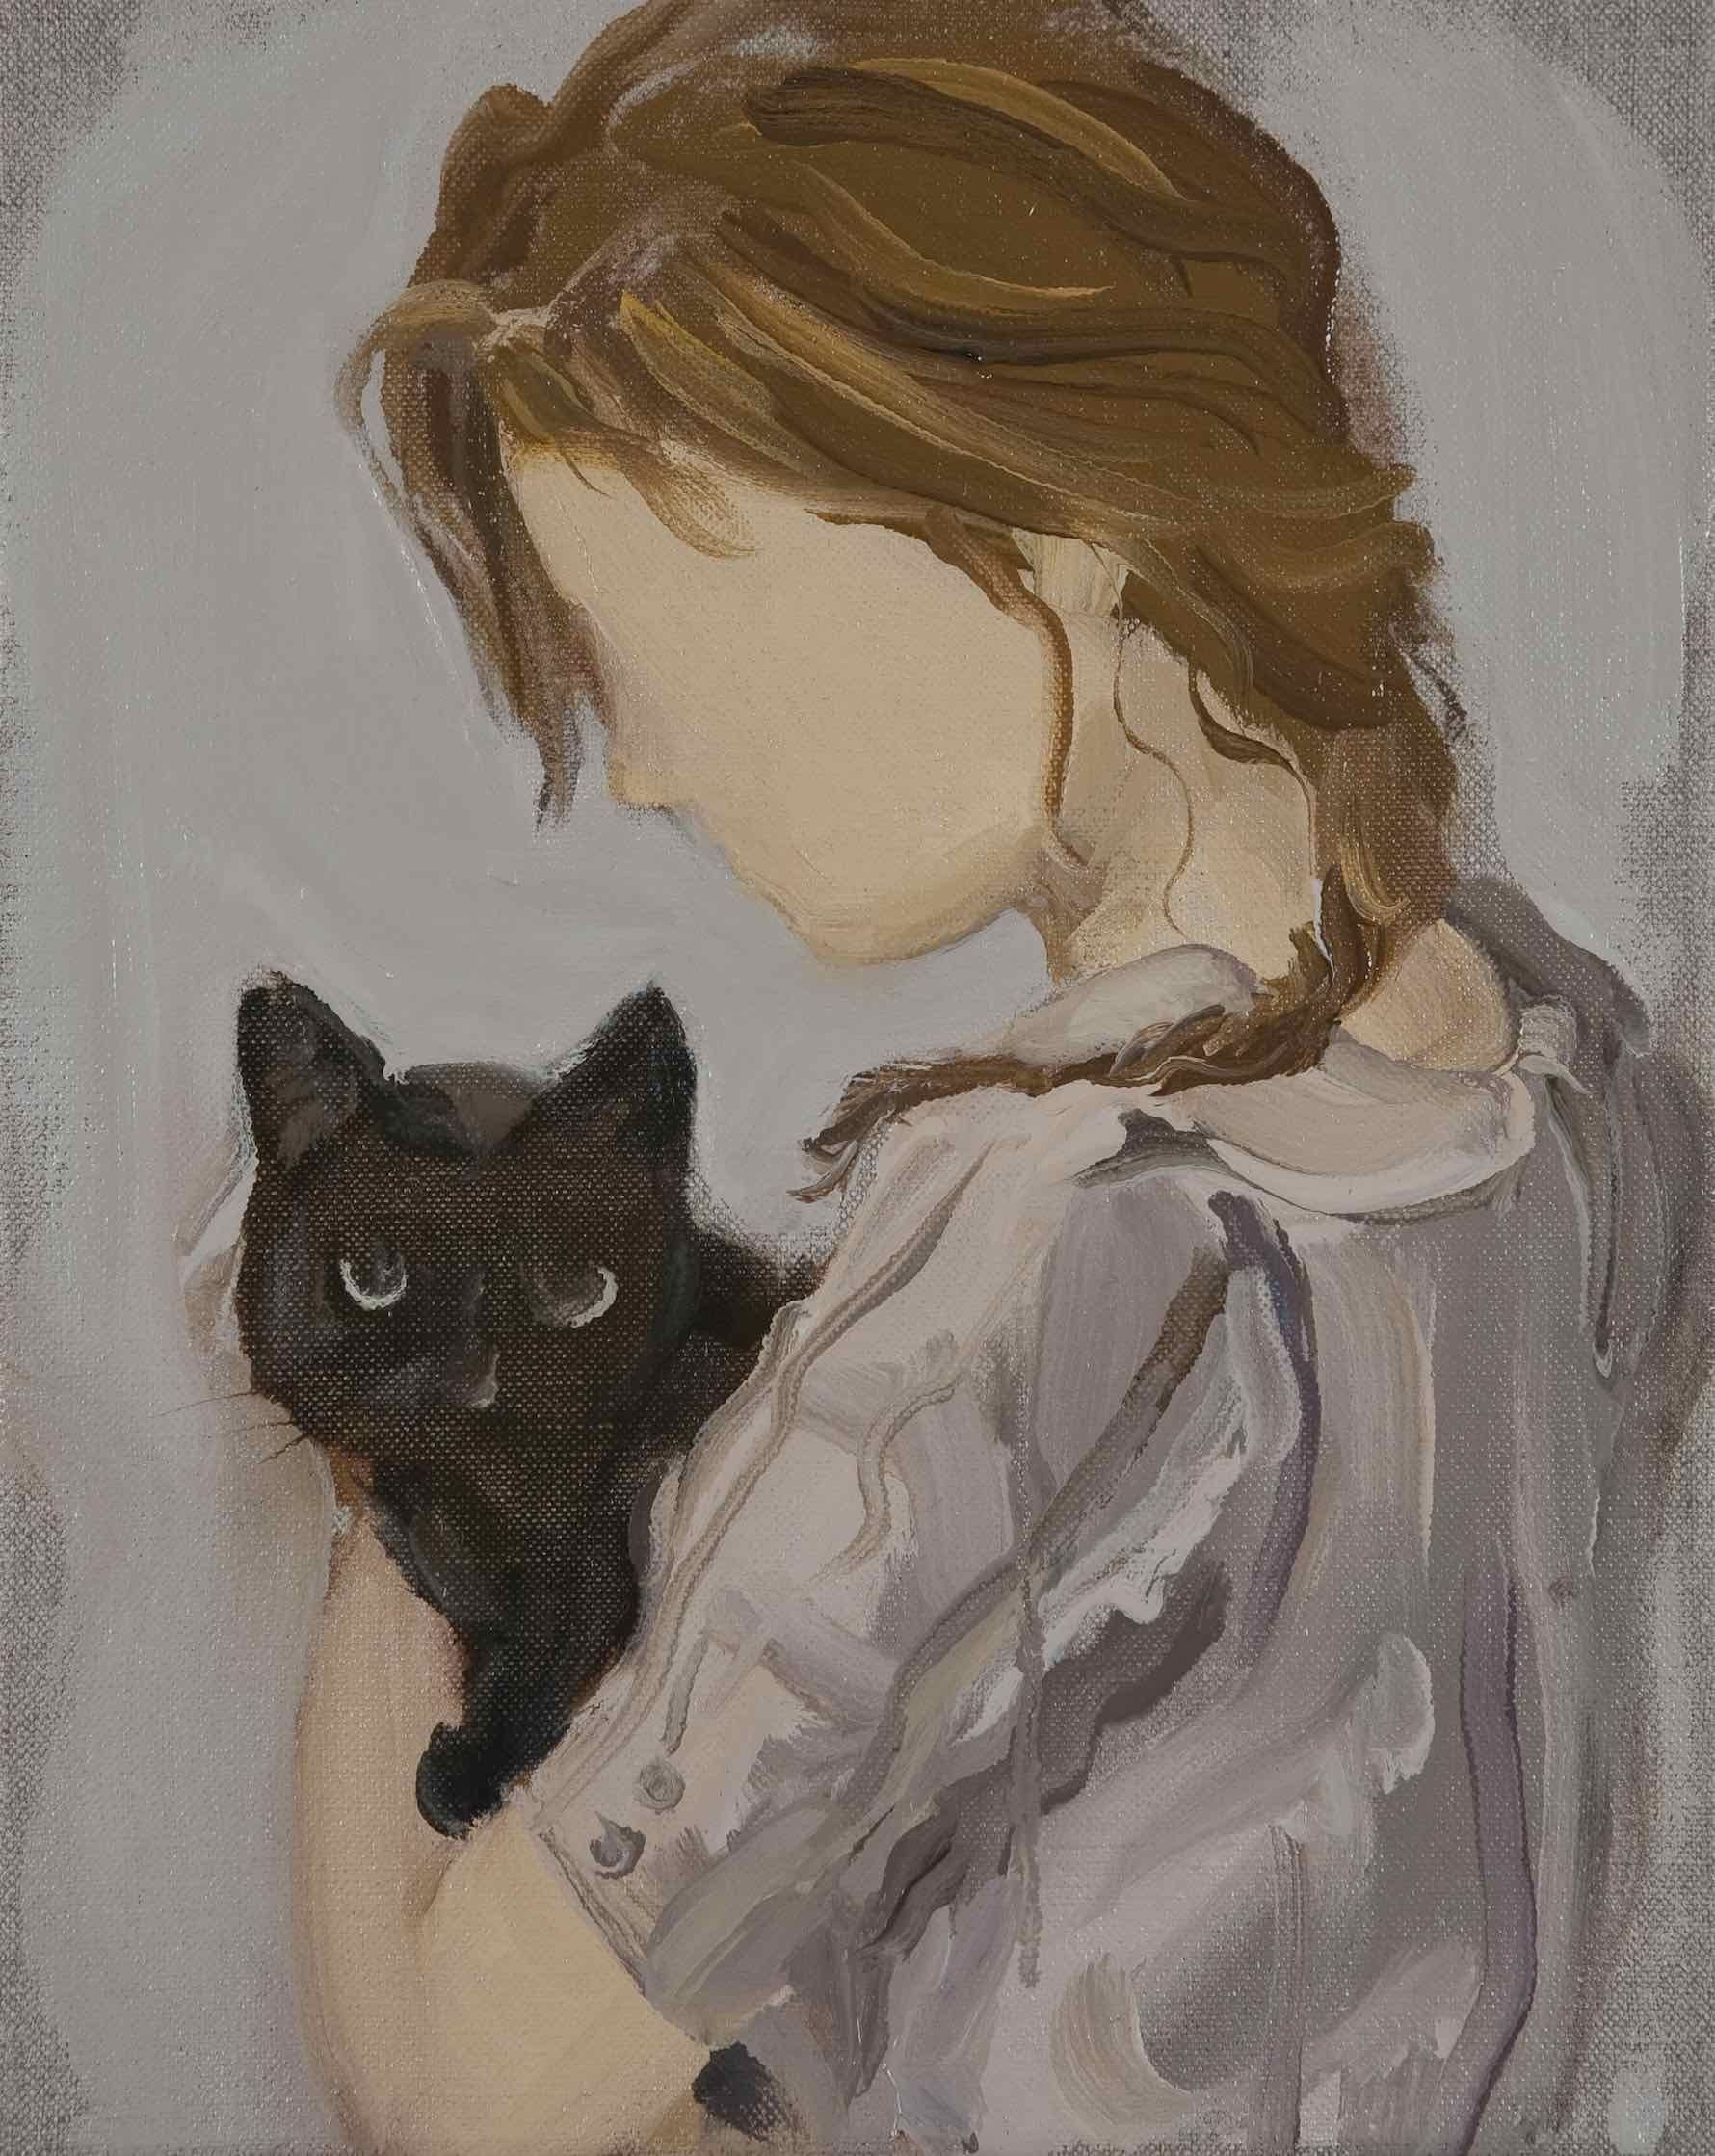 Black Cat Gideon Rubin 2012 Courtesy The Artist And Hosfelt Gallery